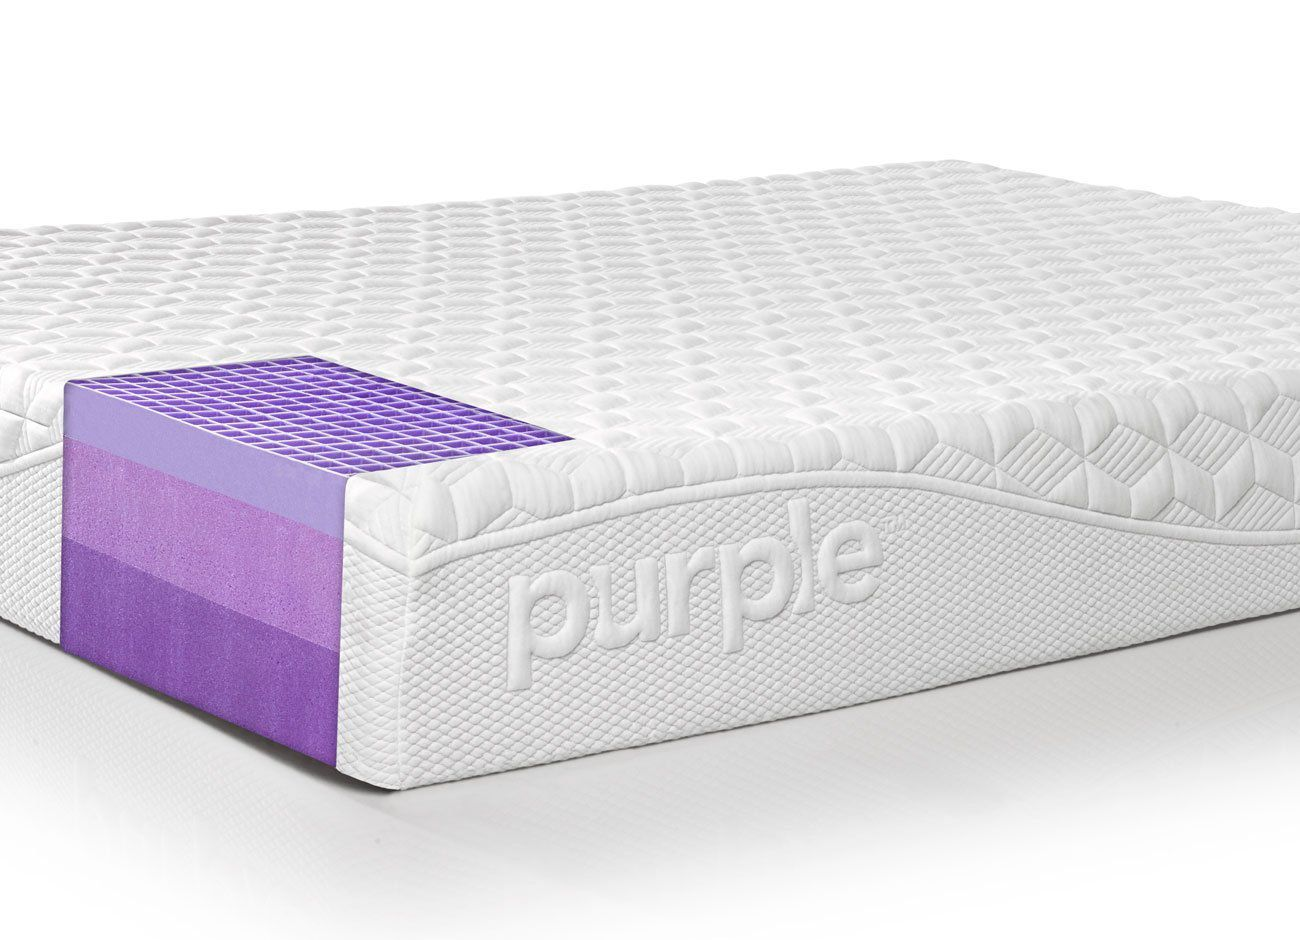 8 Best Mattresses For Side Sleepers Of 2020